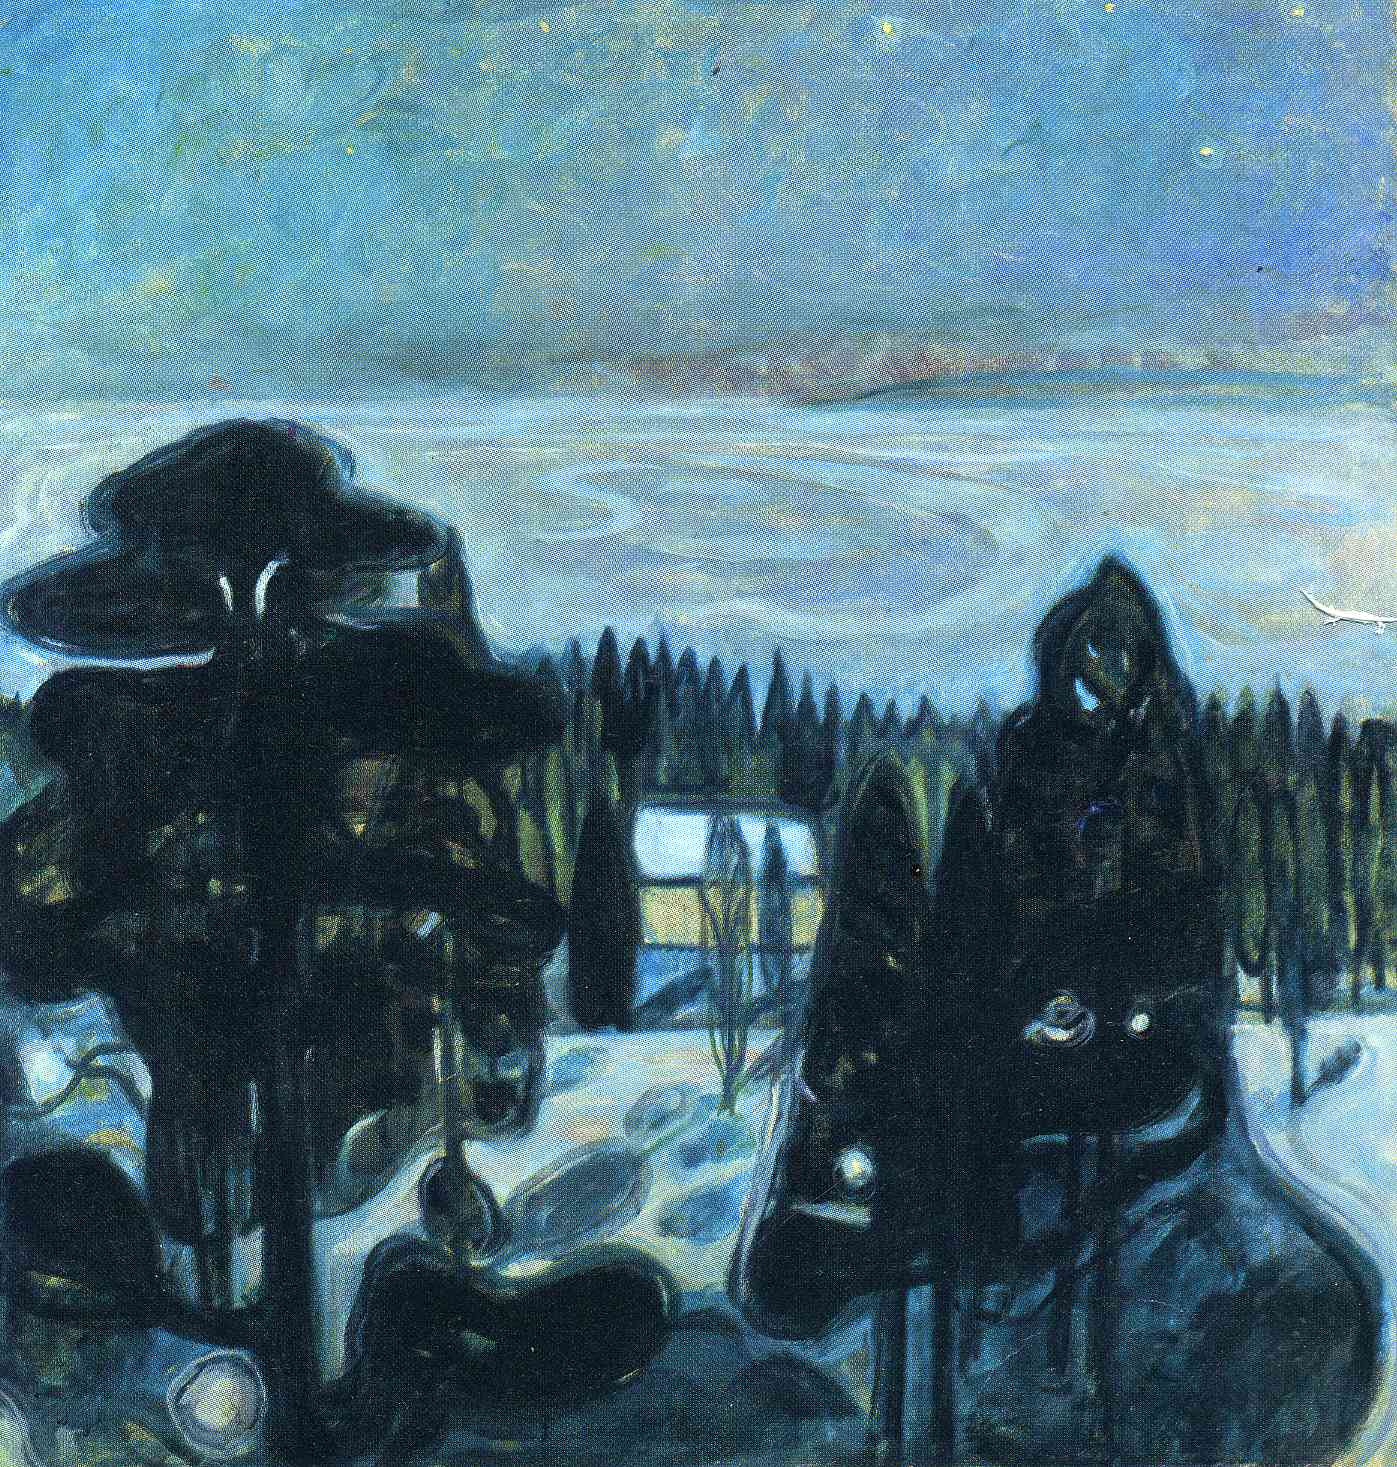 Edvard Munch / Edvard Munk  White-night-1901